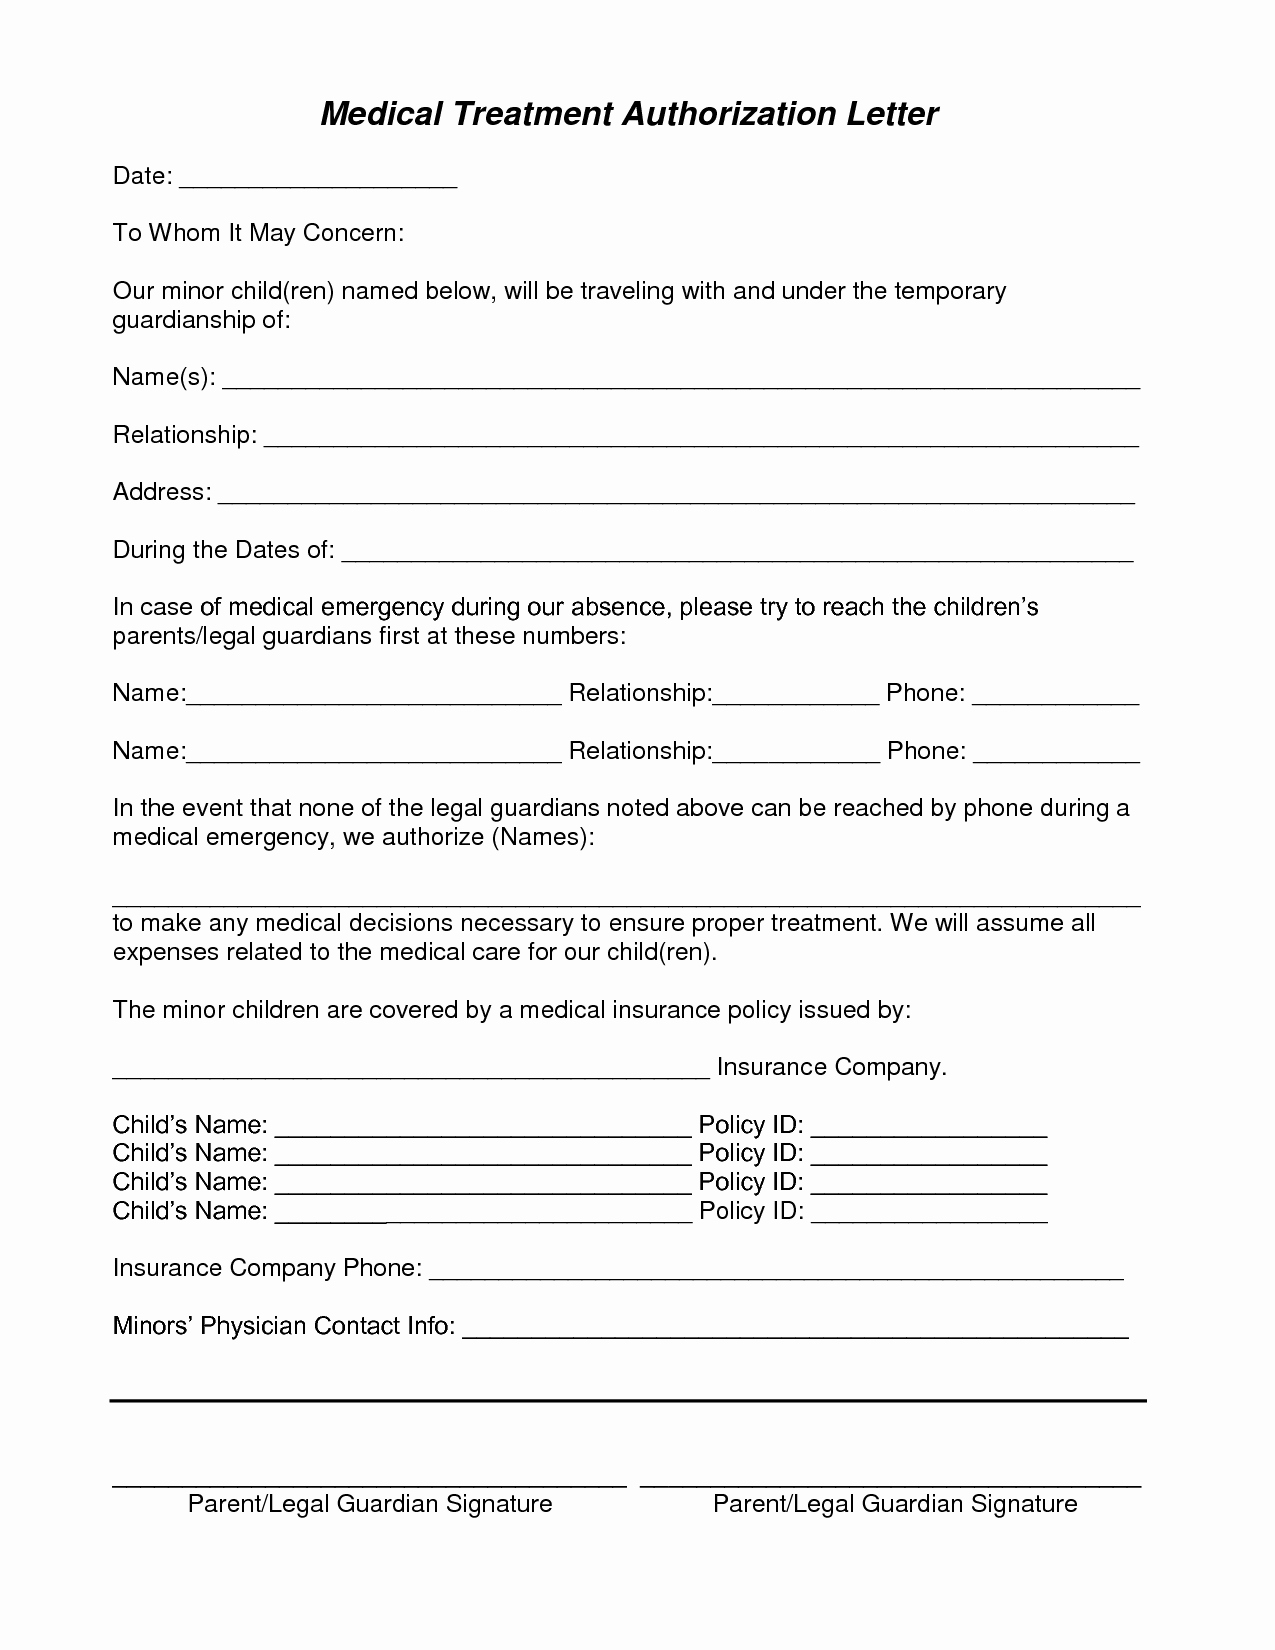 Medical Consent Letter for Grandparents Template - Sick form Template Elegant Medical Consent form for Grandparents